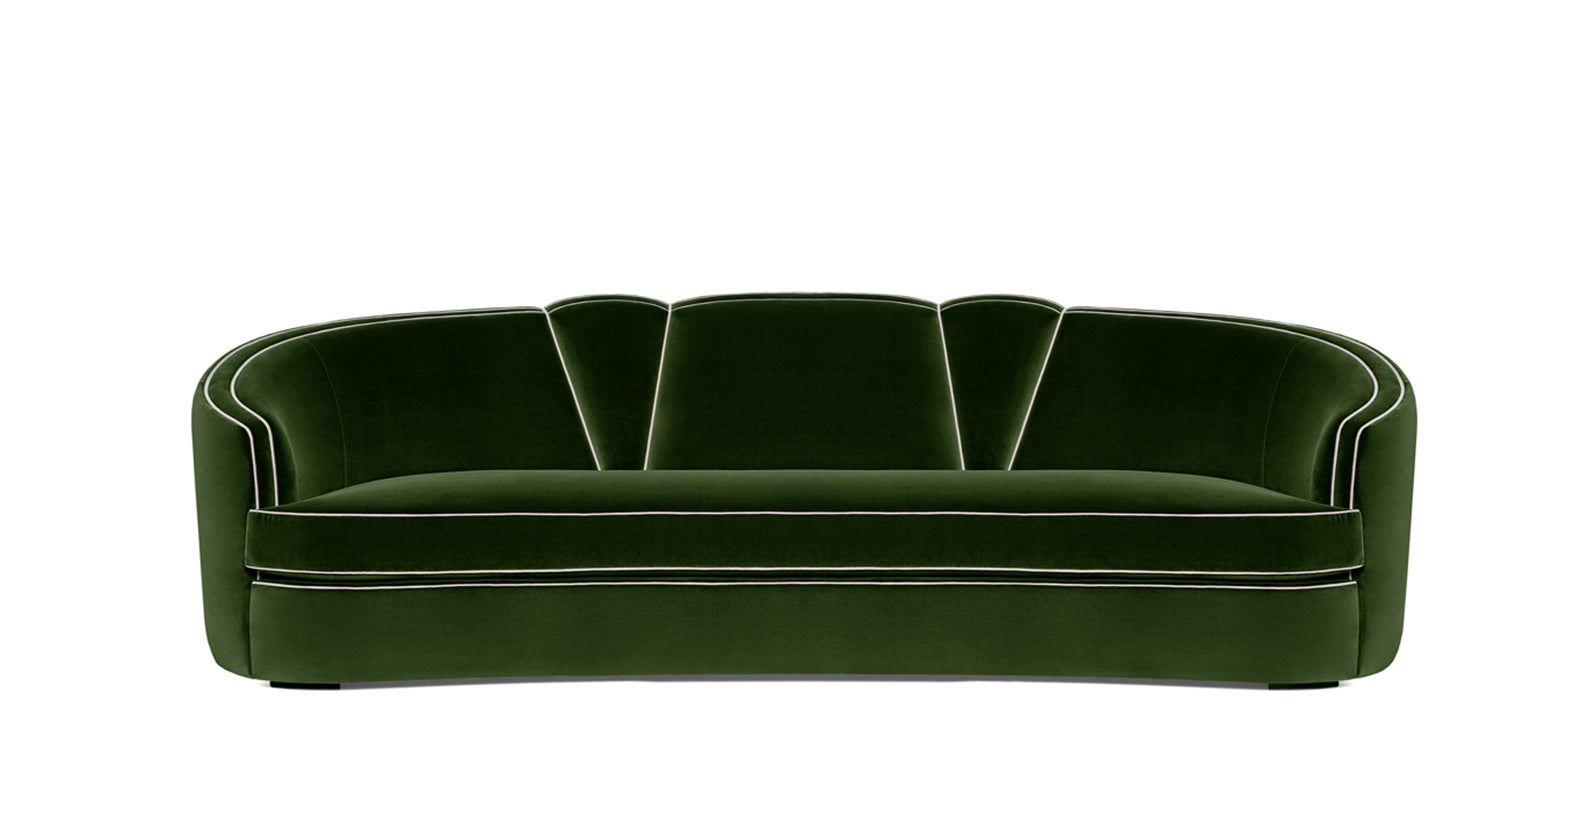 Mindy Kaling Makes the Case for a Surprisingly Subtle Sofa Trend